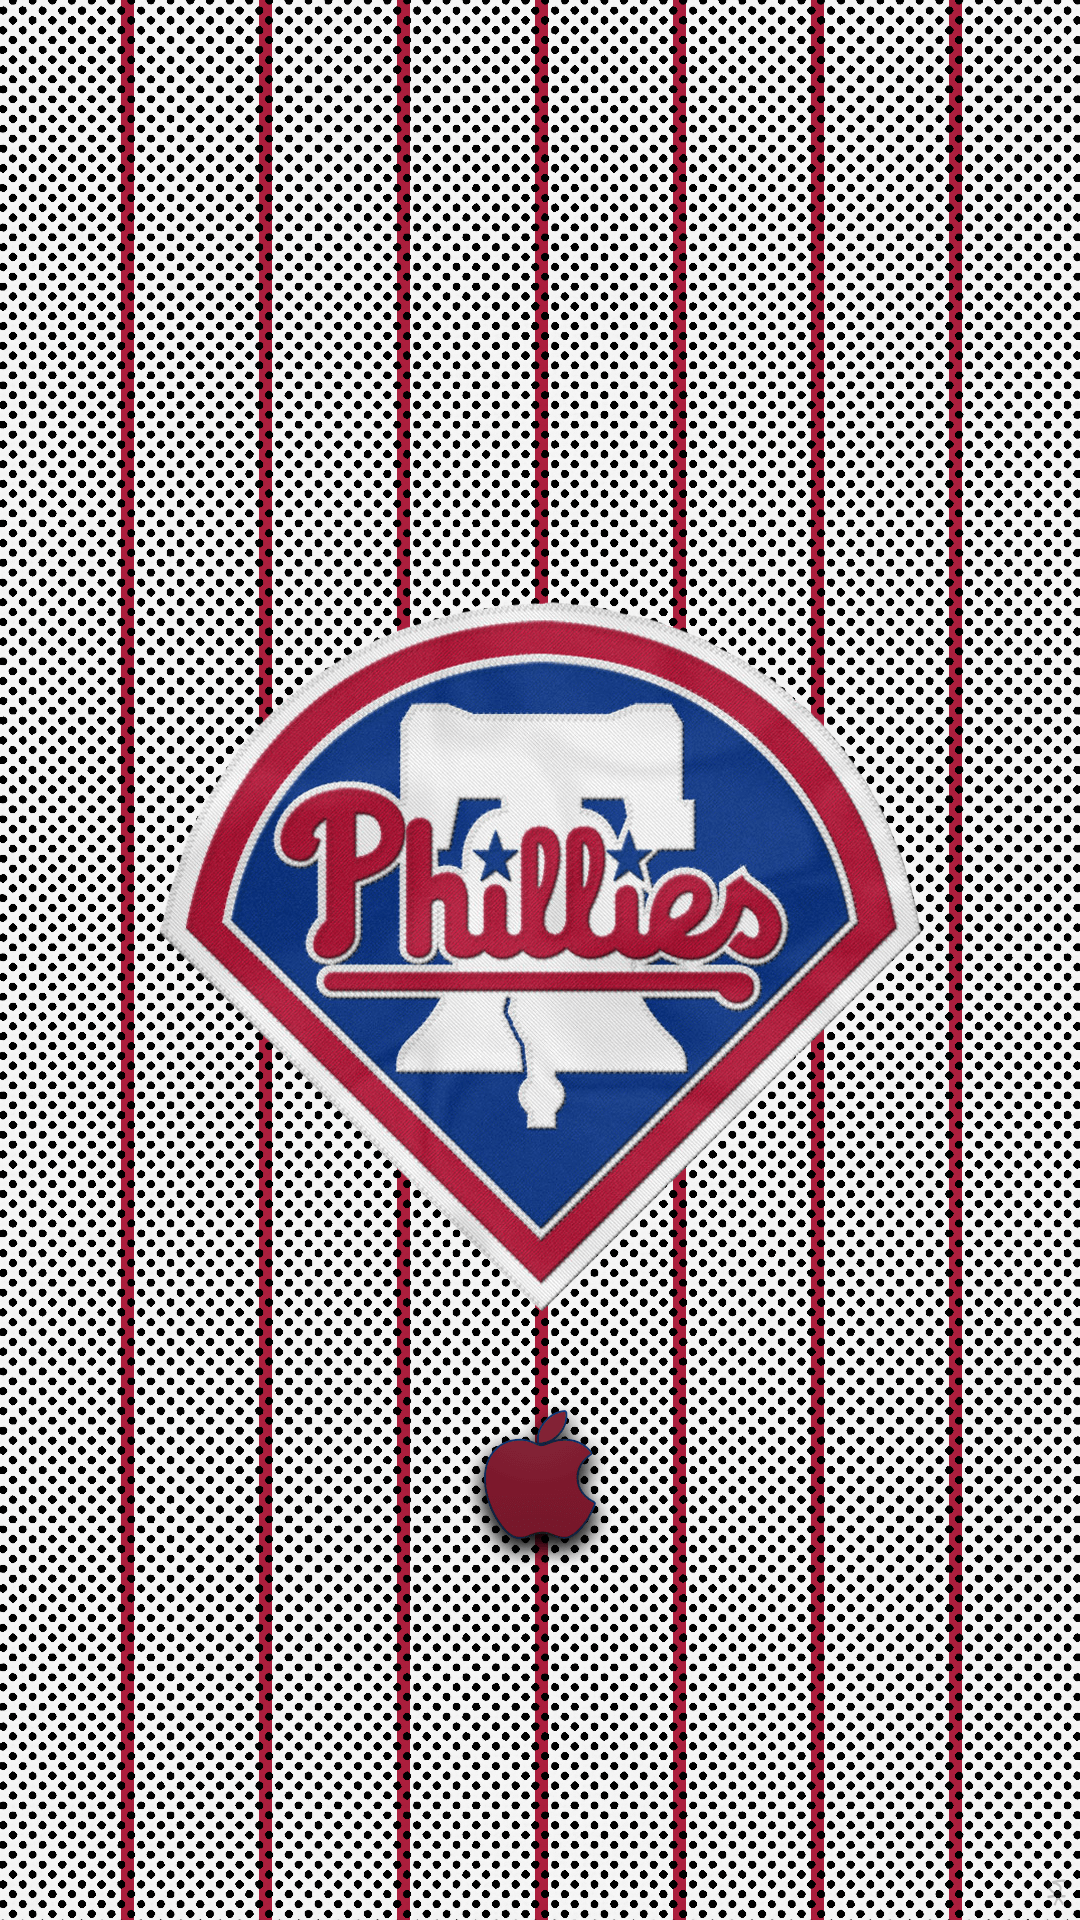 philadelphia phillies iphone 6 wallpaper